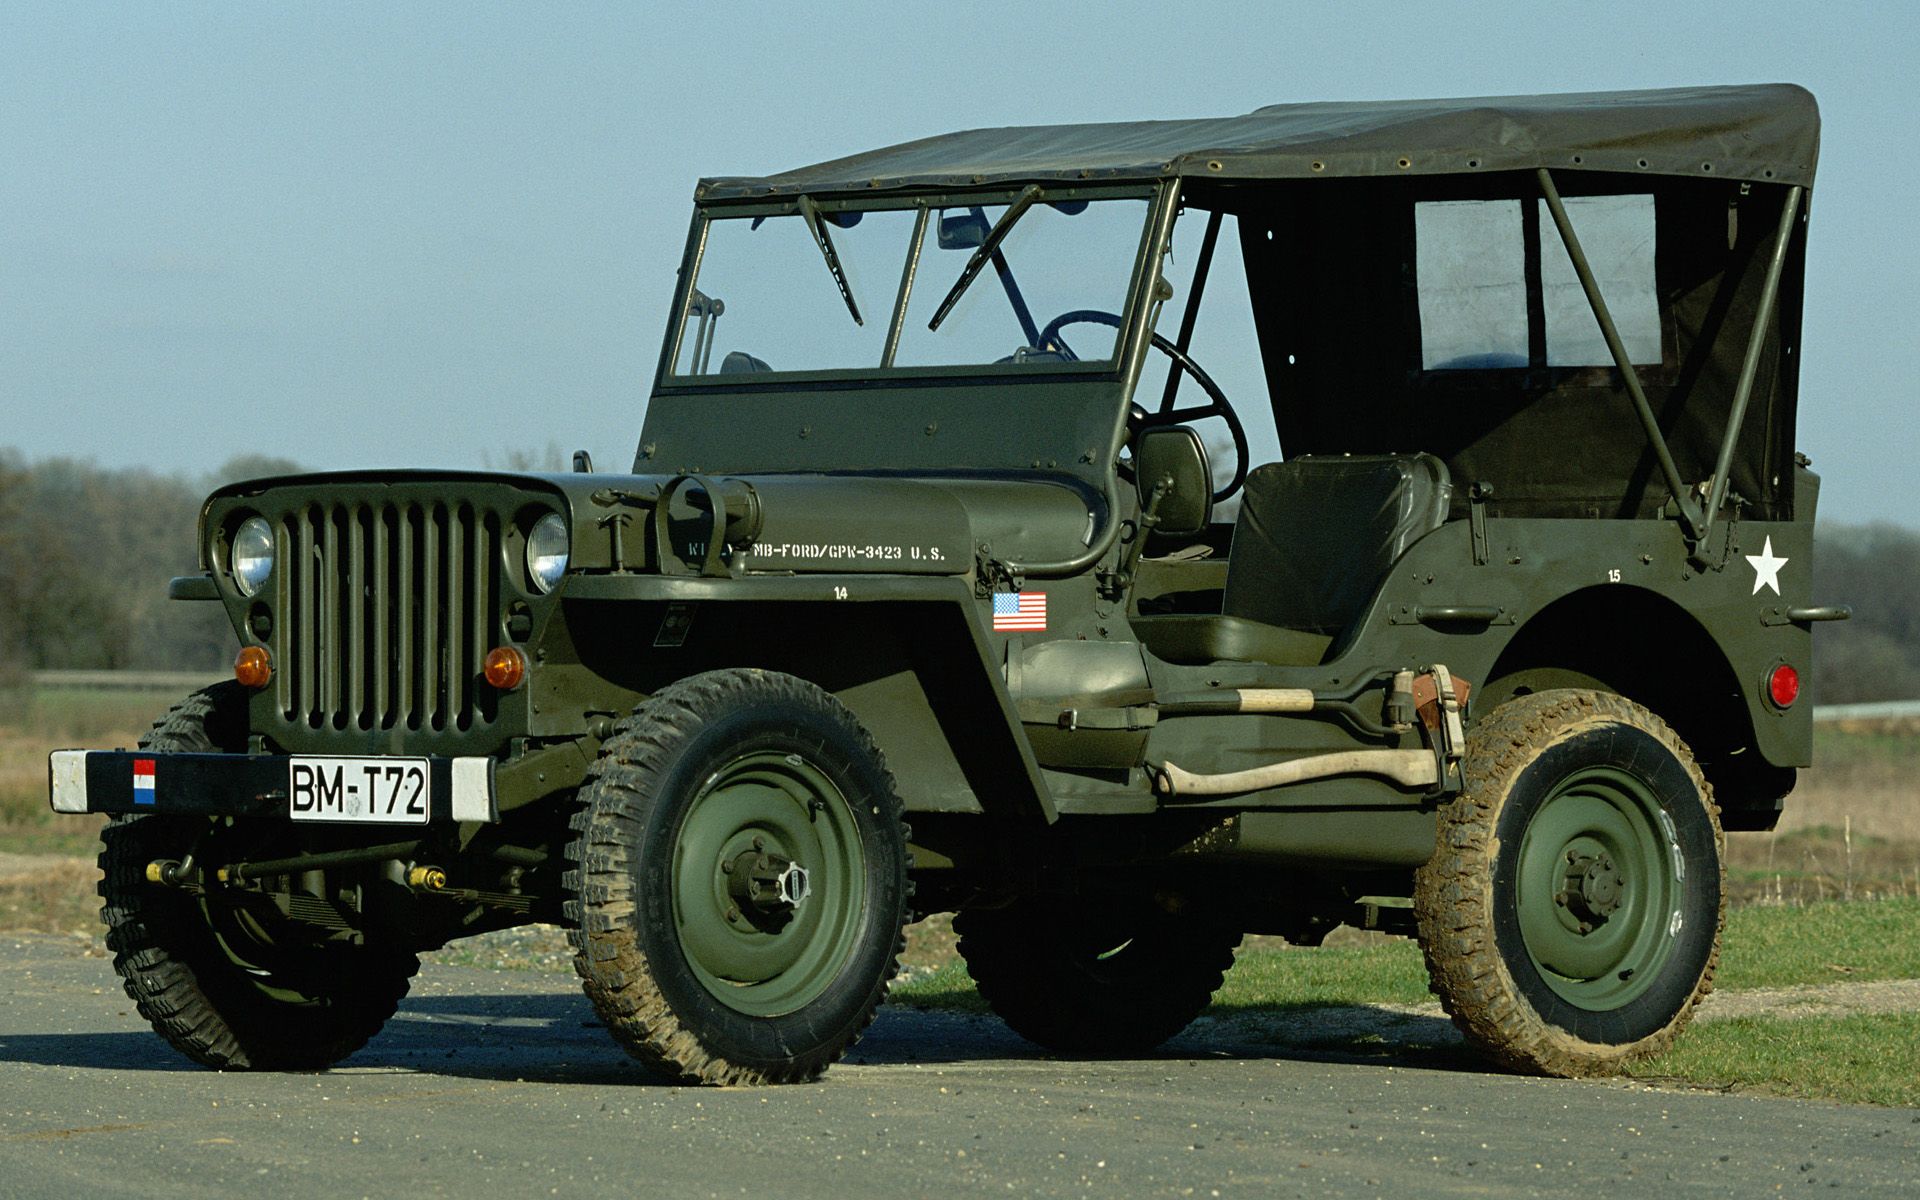 Willys MB Jeep 1942 Wallpaper Free For Ipad